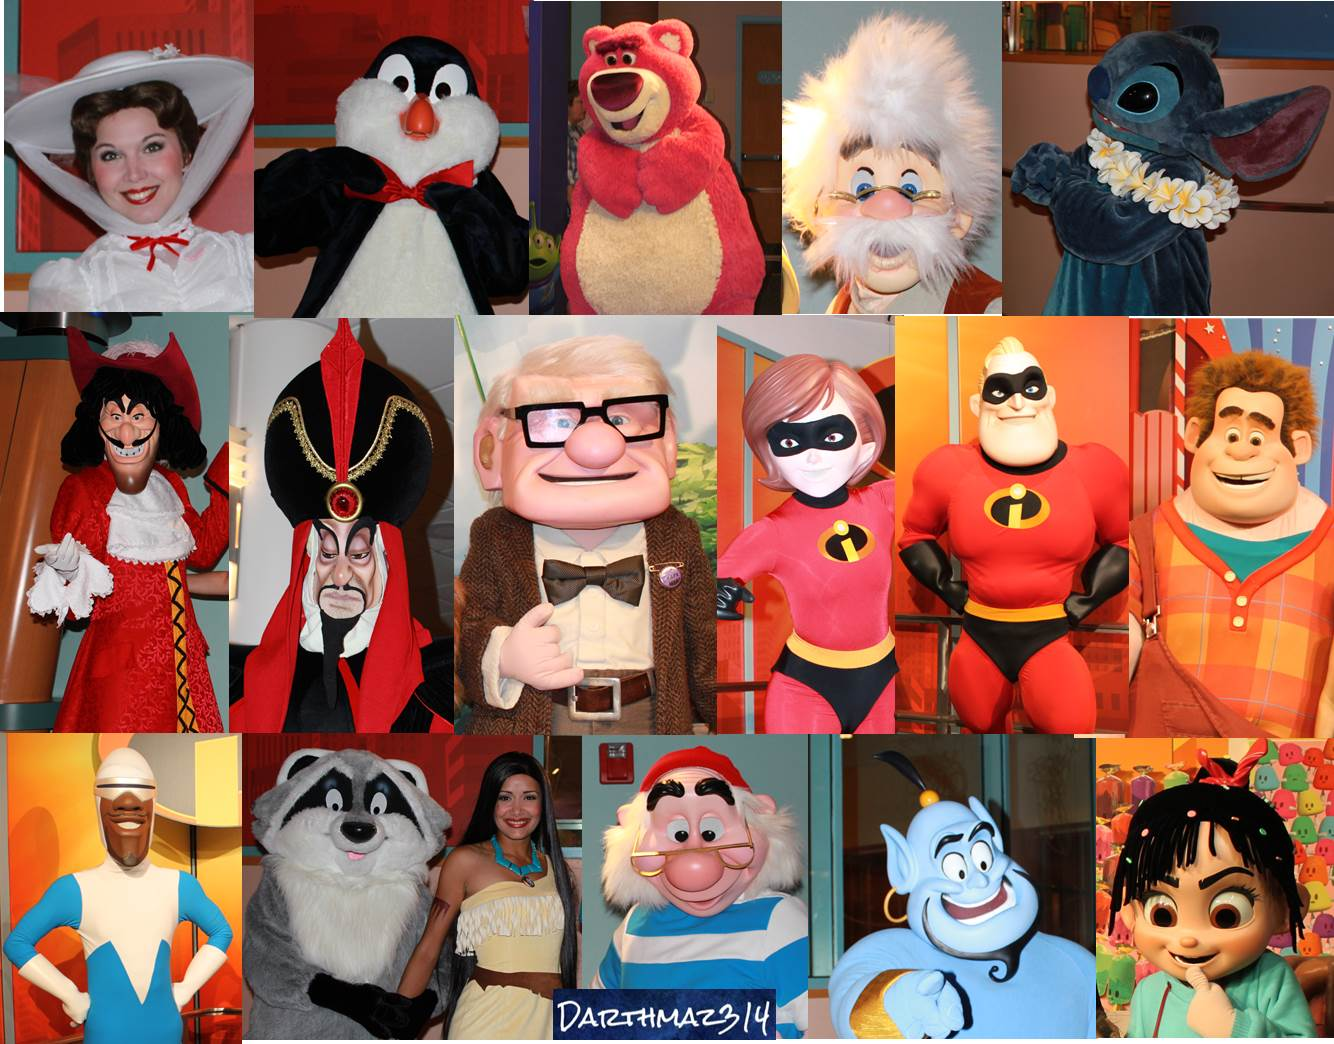 Darthmaz314 july 2015 characters that have appeared at the magic of disney animation meet greet courtesy darthmaz314 kristyandbryce Gallery